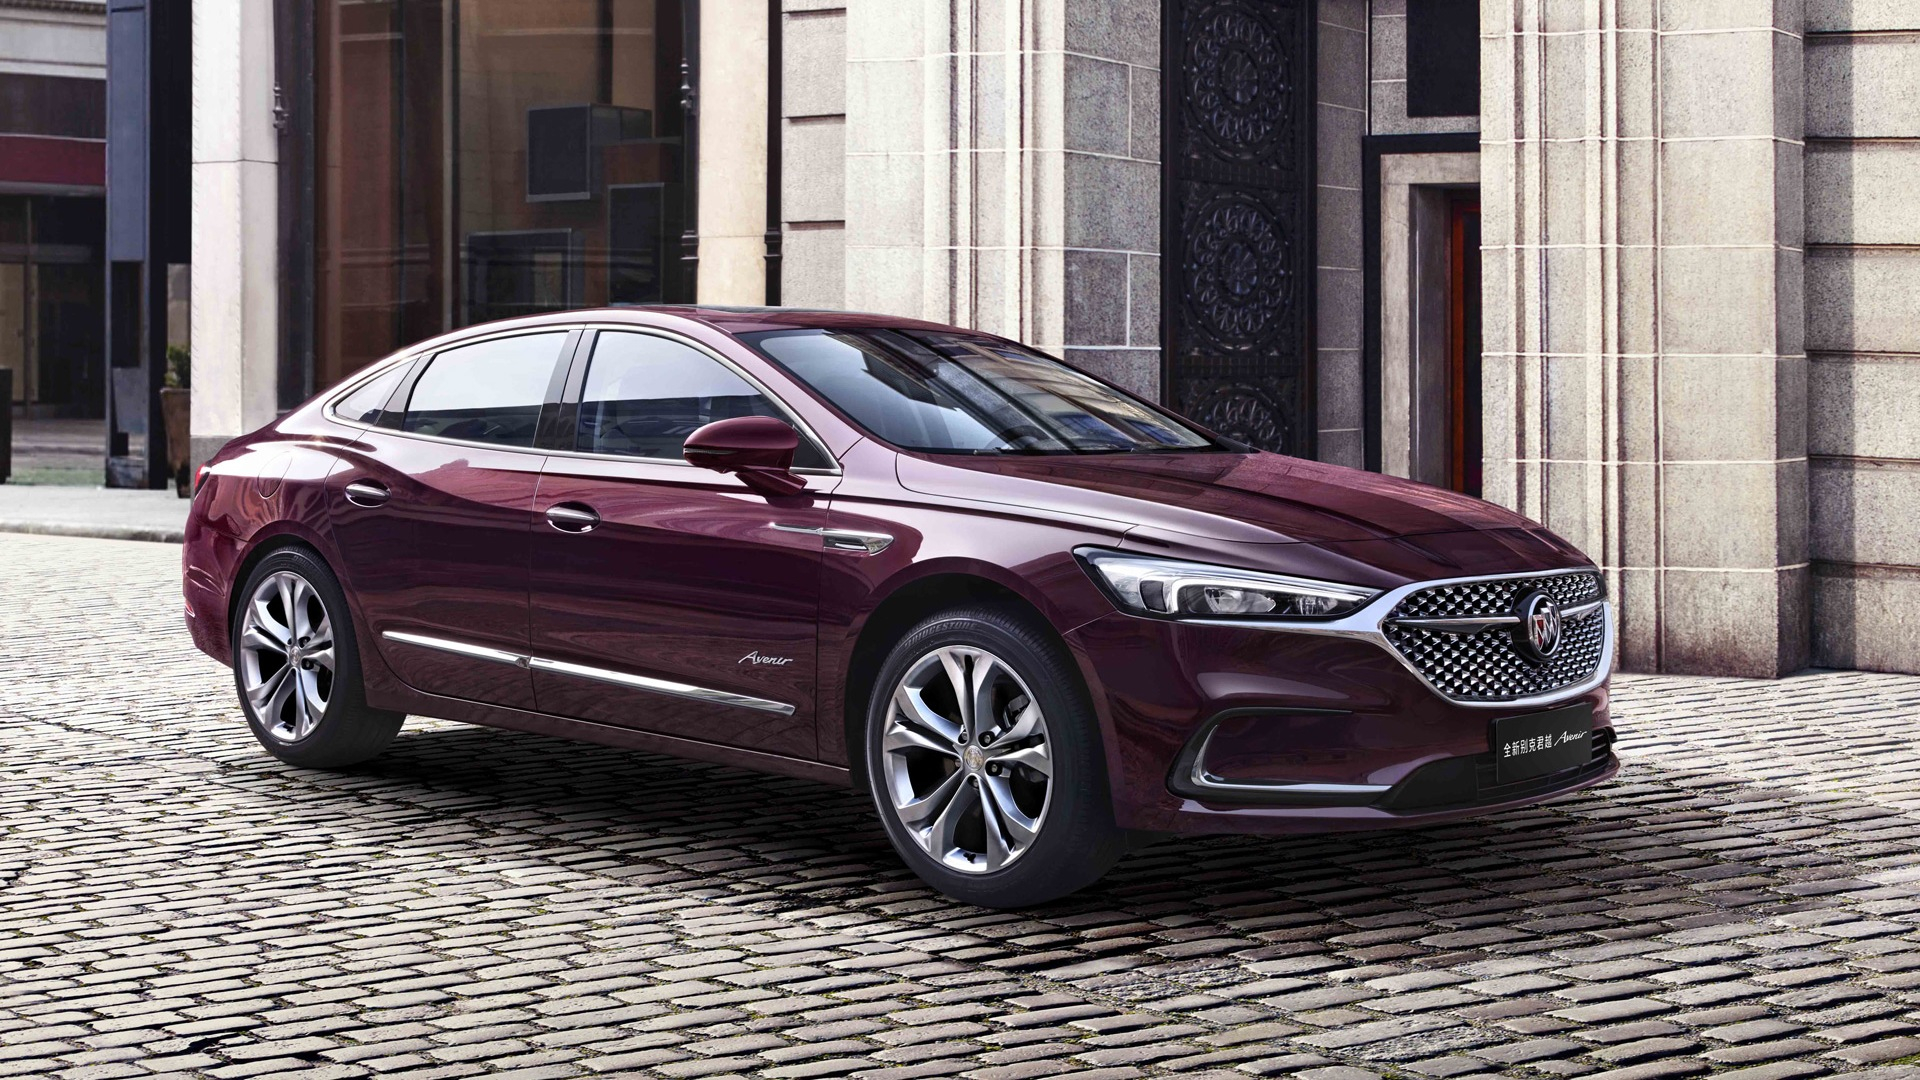 Car Spy Shots, News, Reviews, And Insights - Motor Authority 2022 Buick Lacrosse Pictures, Cost, Trims